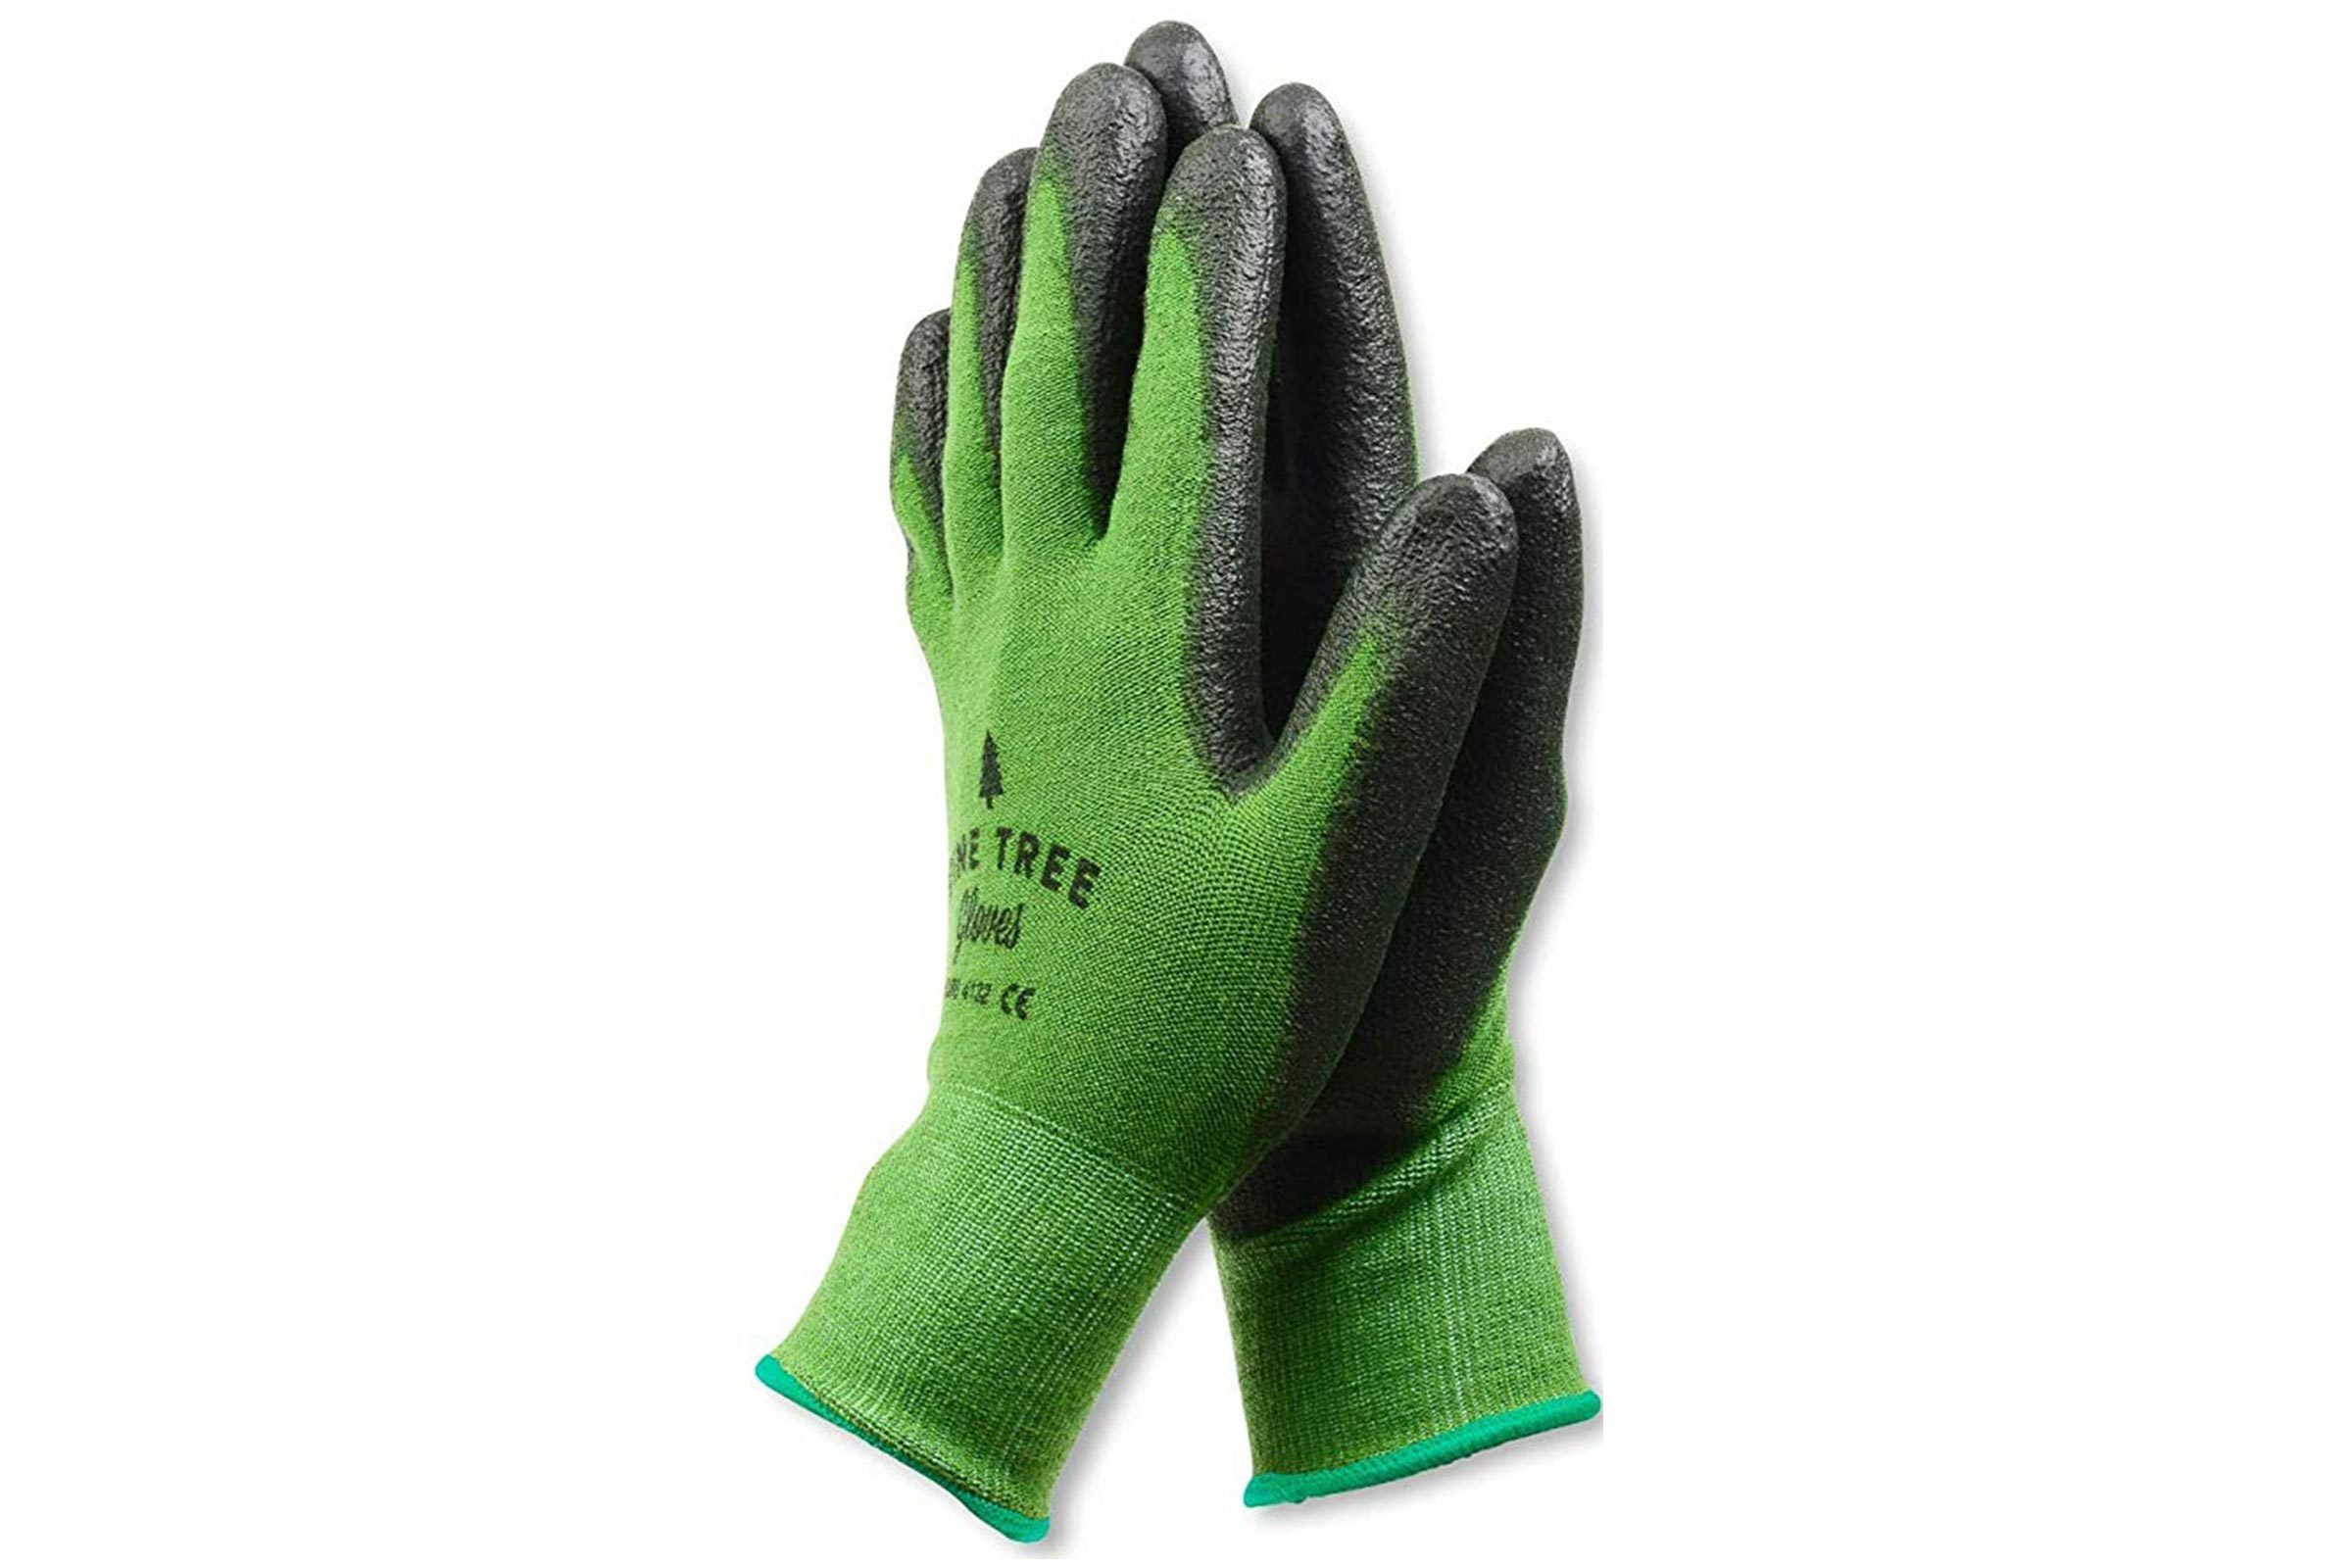 09_Bamboo-Working-Gloves-